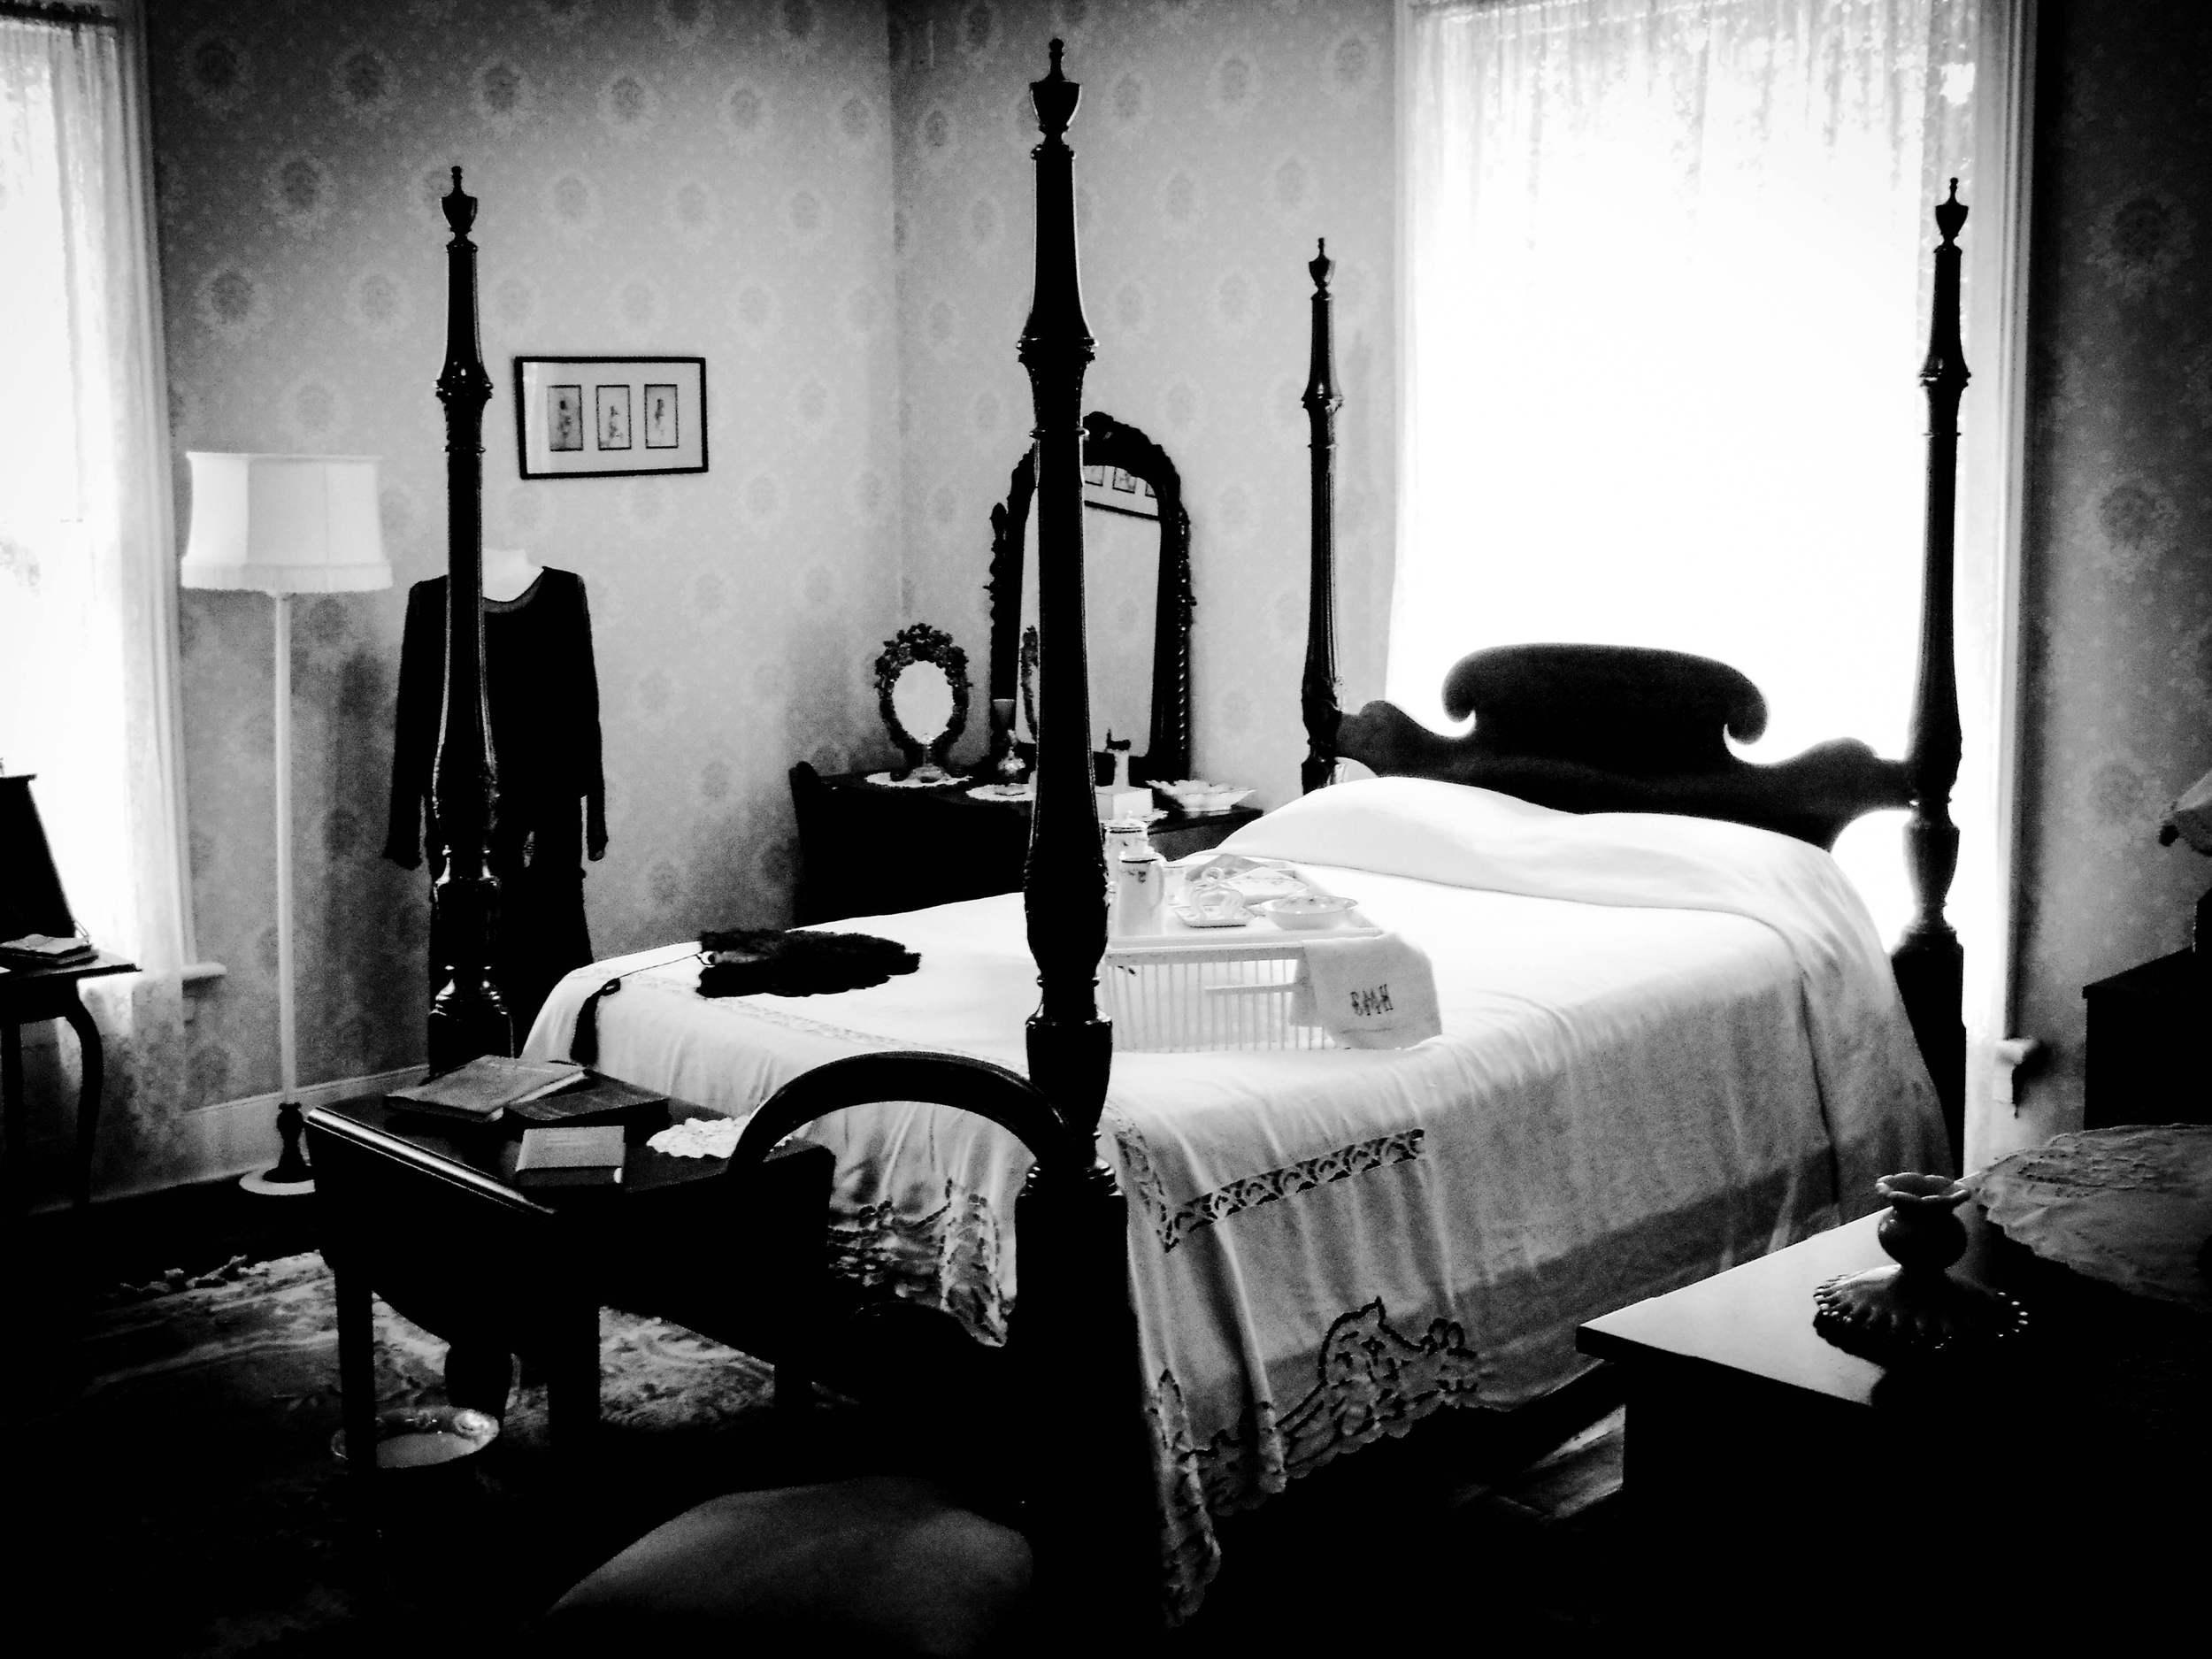 Evelyn Hazen's bedroom, where she claimed to have seen the ghost of Jack McKnight.